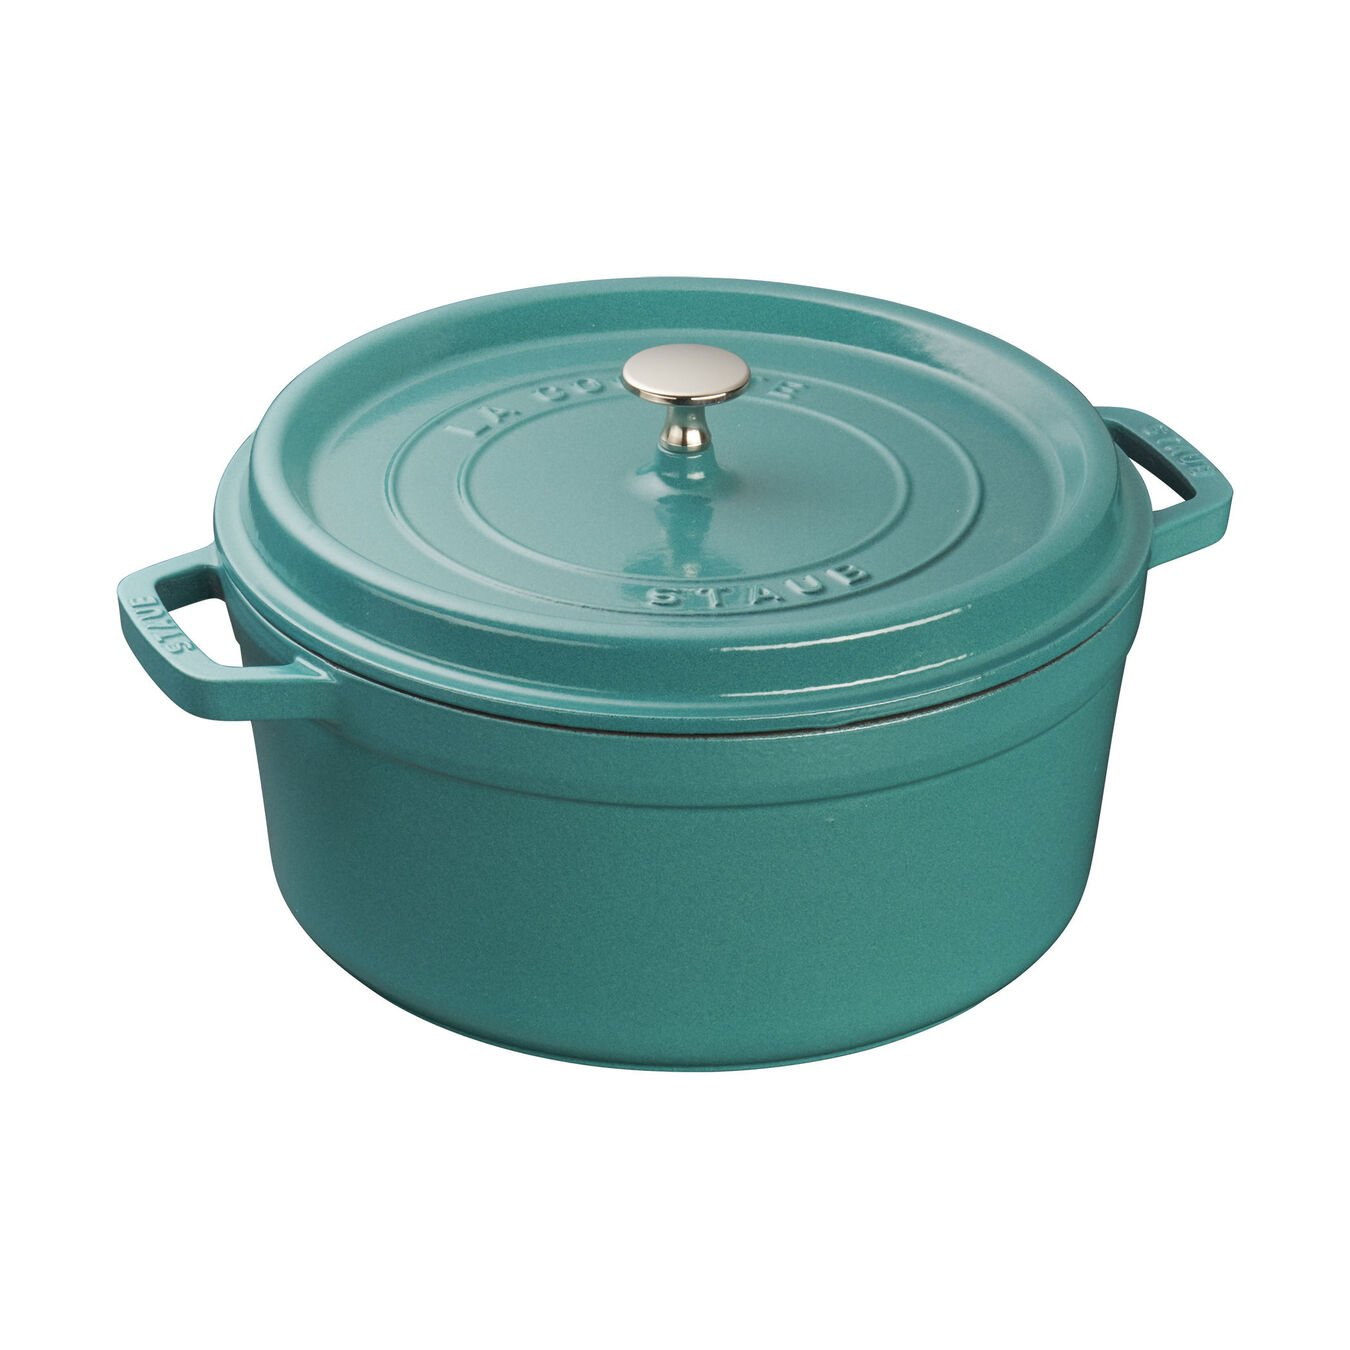 5.5-qt Round Cocotte - Turquoise,,large 1